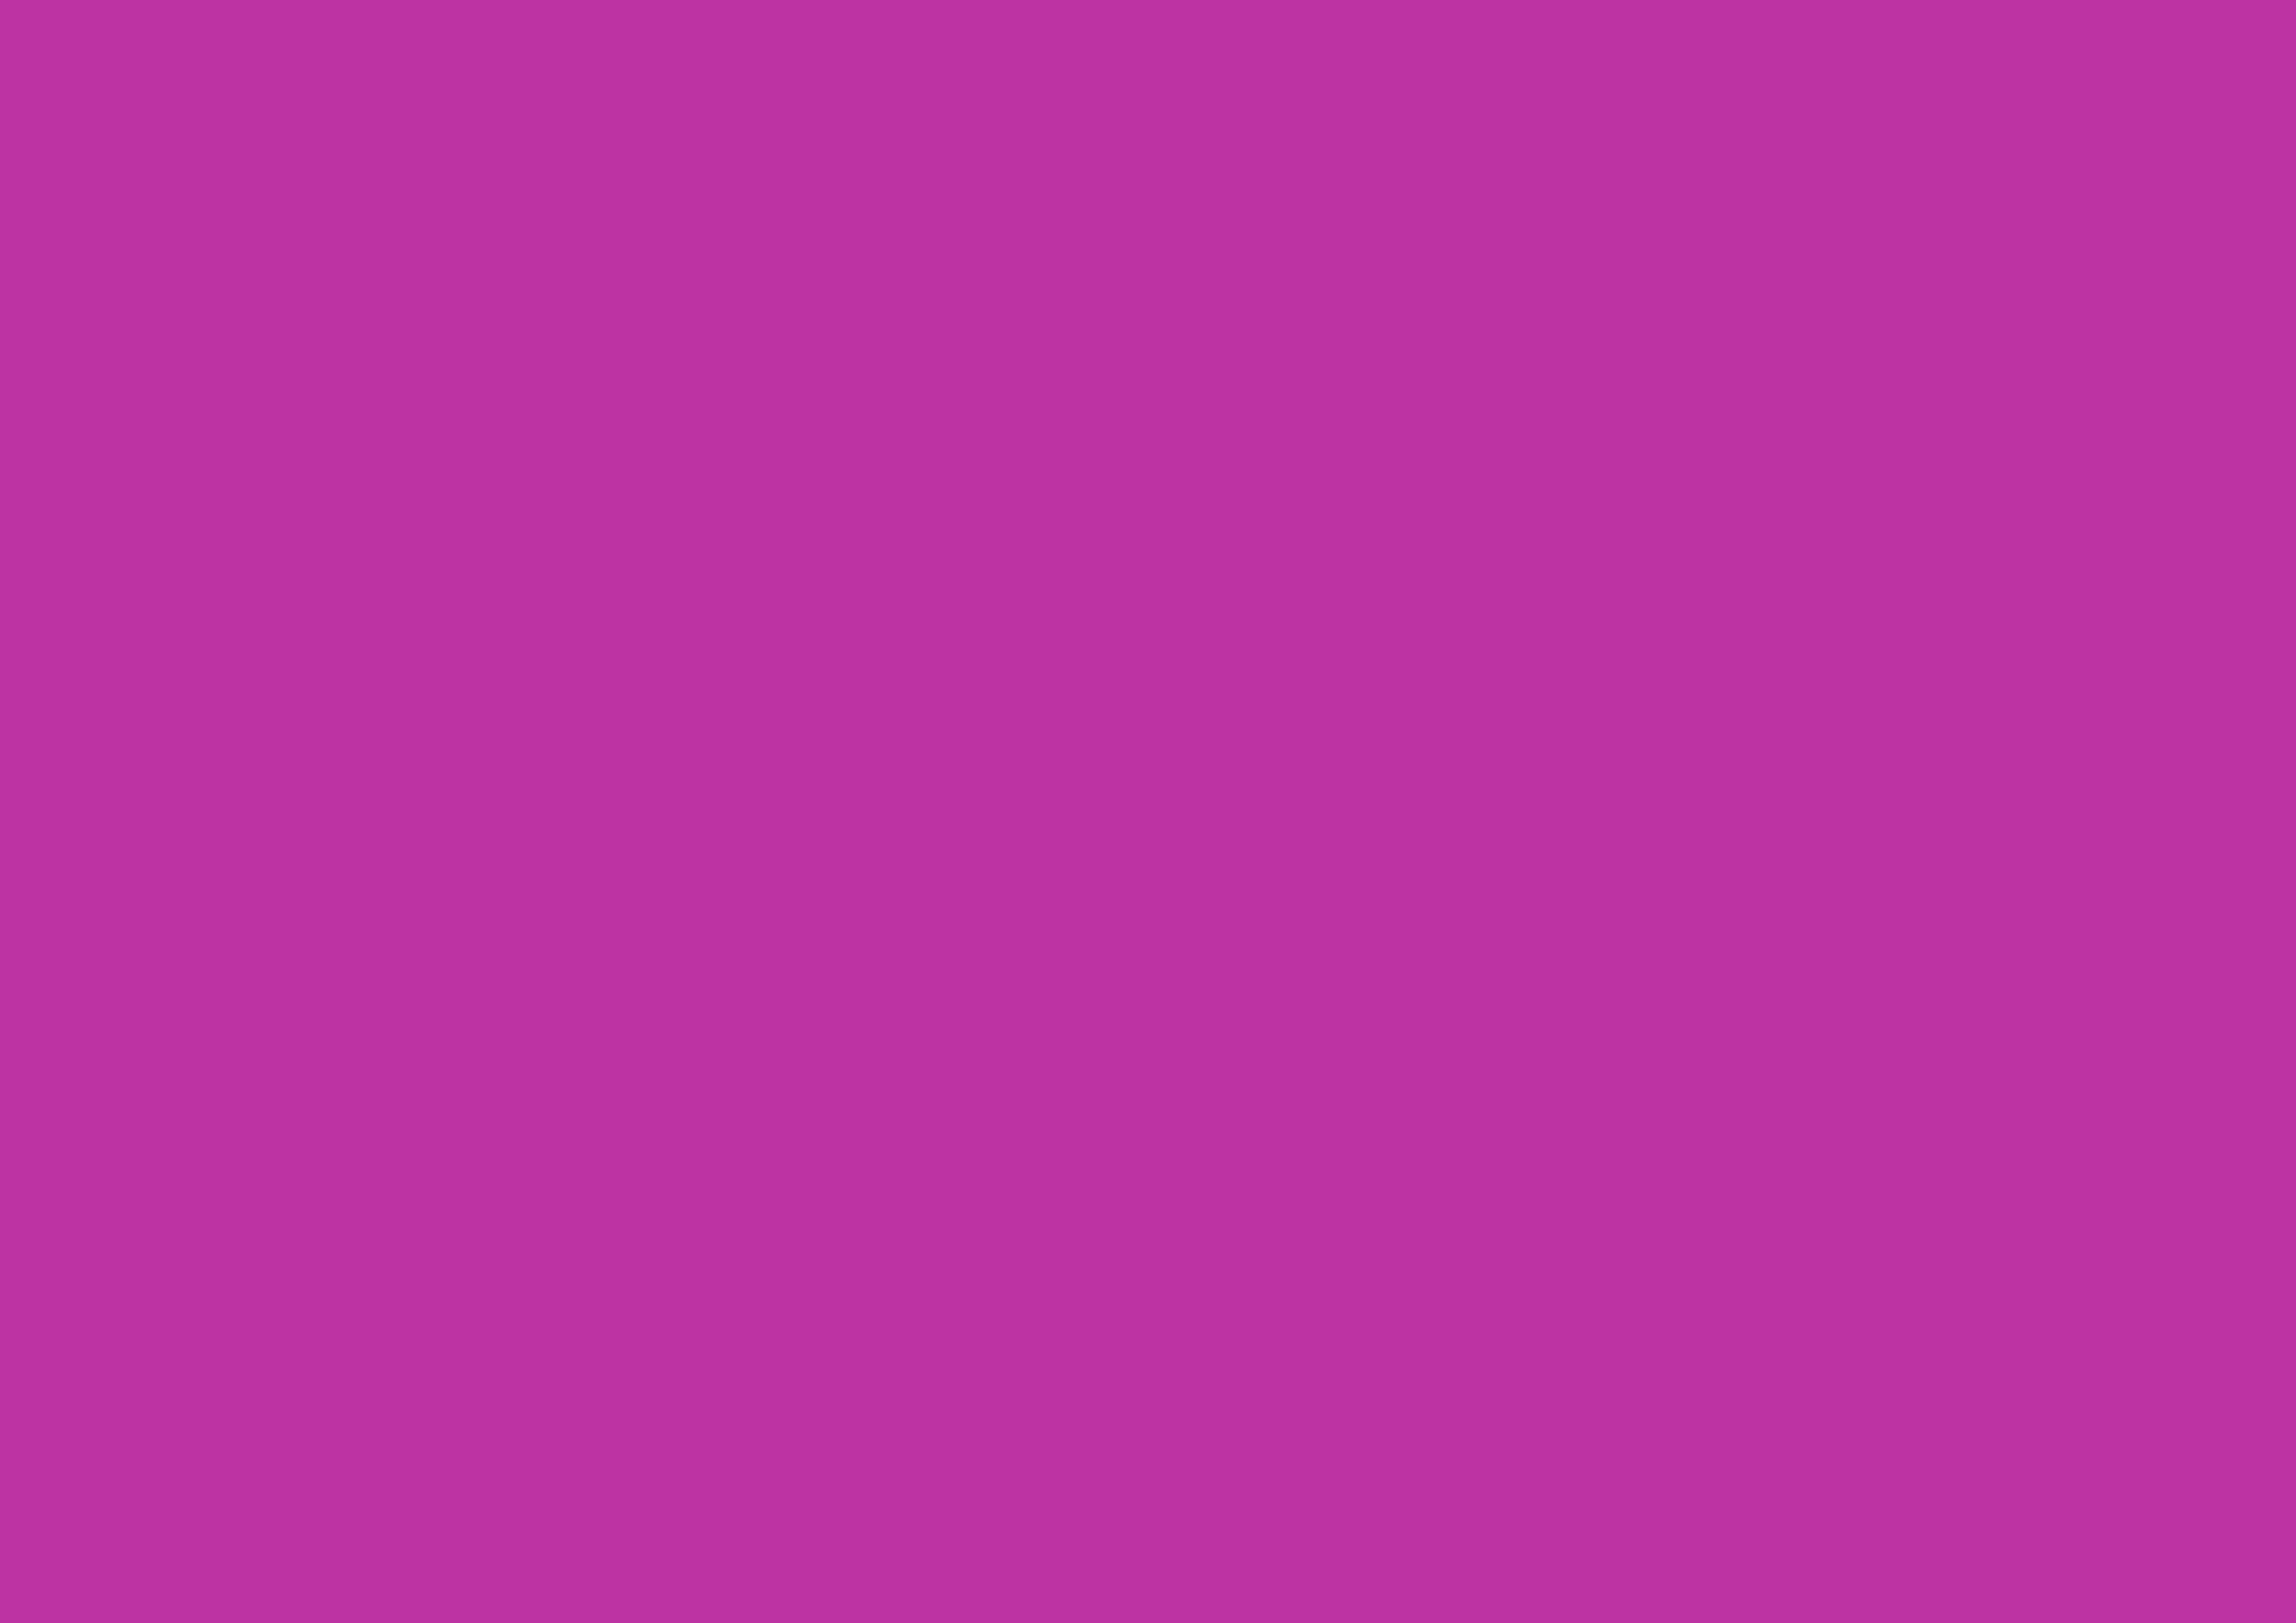 3508x2480 Byzantine Solid Color Background